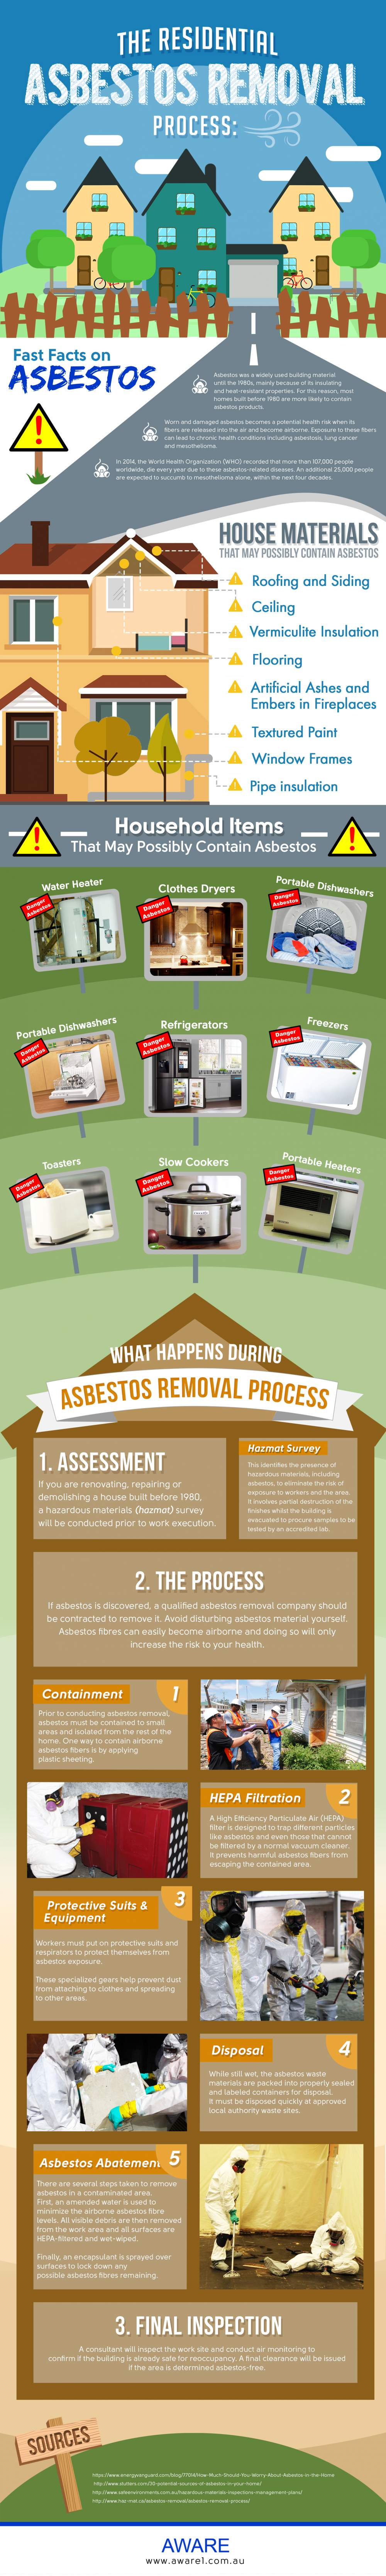 Residential Asbestos Removal Process